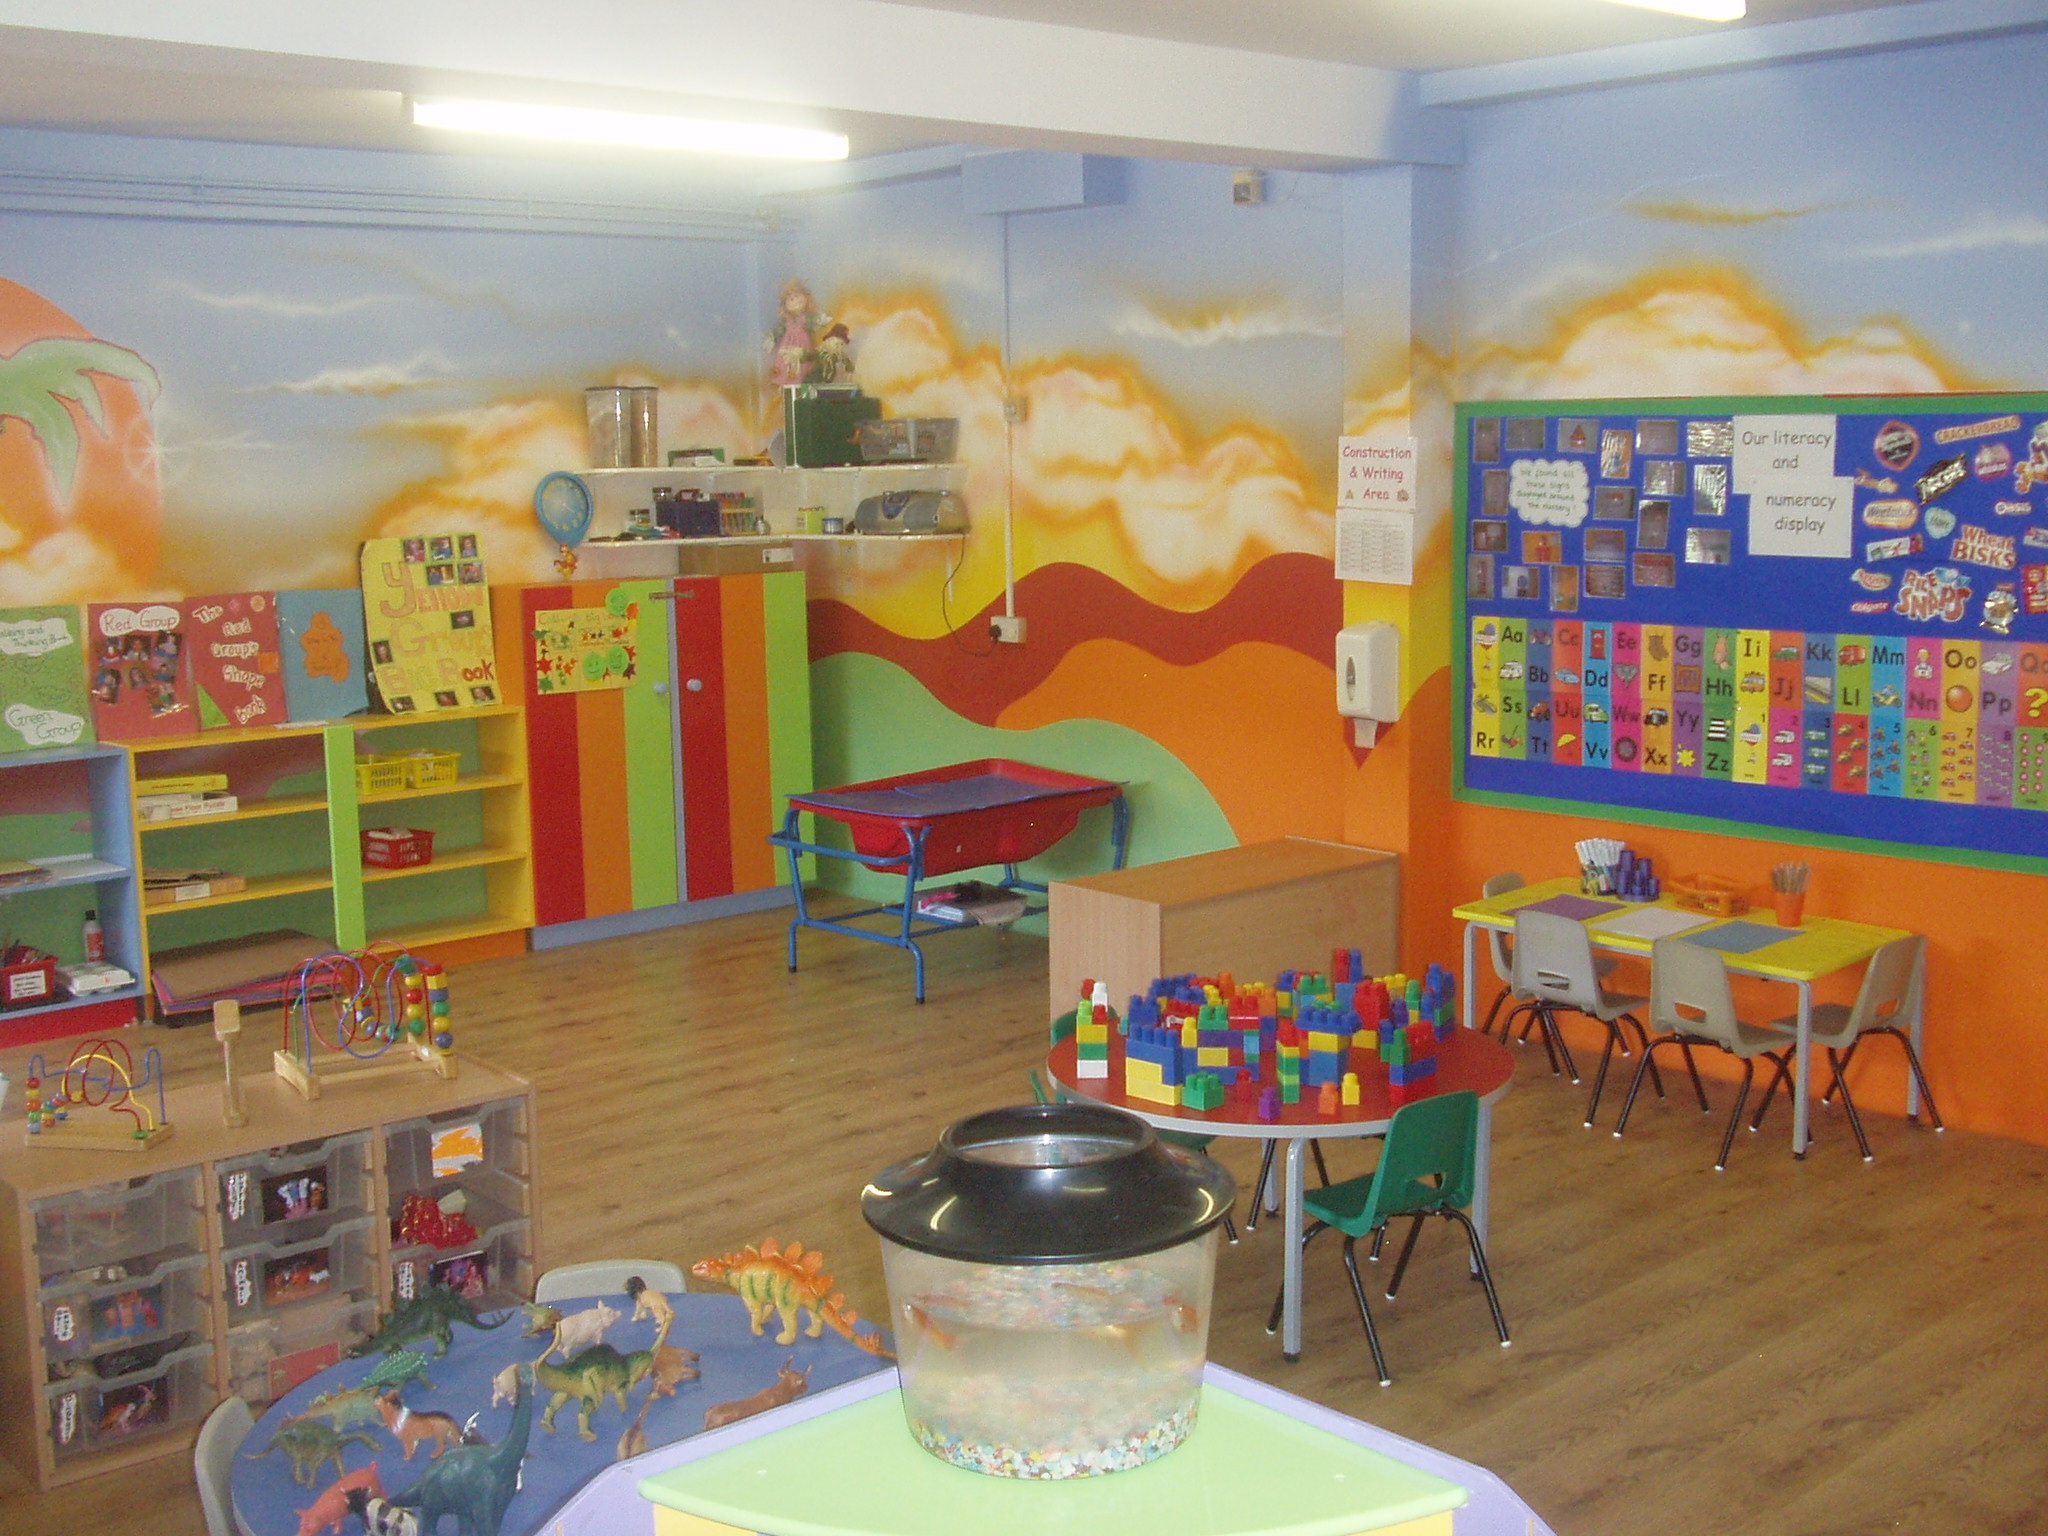 Classroom Design Ideas tons of classroom design ideas for setting up your cozy learning space Preschool Classroom Design Ideas With Colorful Decoration And Safe Classroom Designs For Home Or Center Based Preschools Pinterest Class